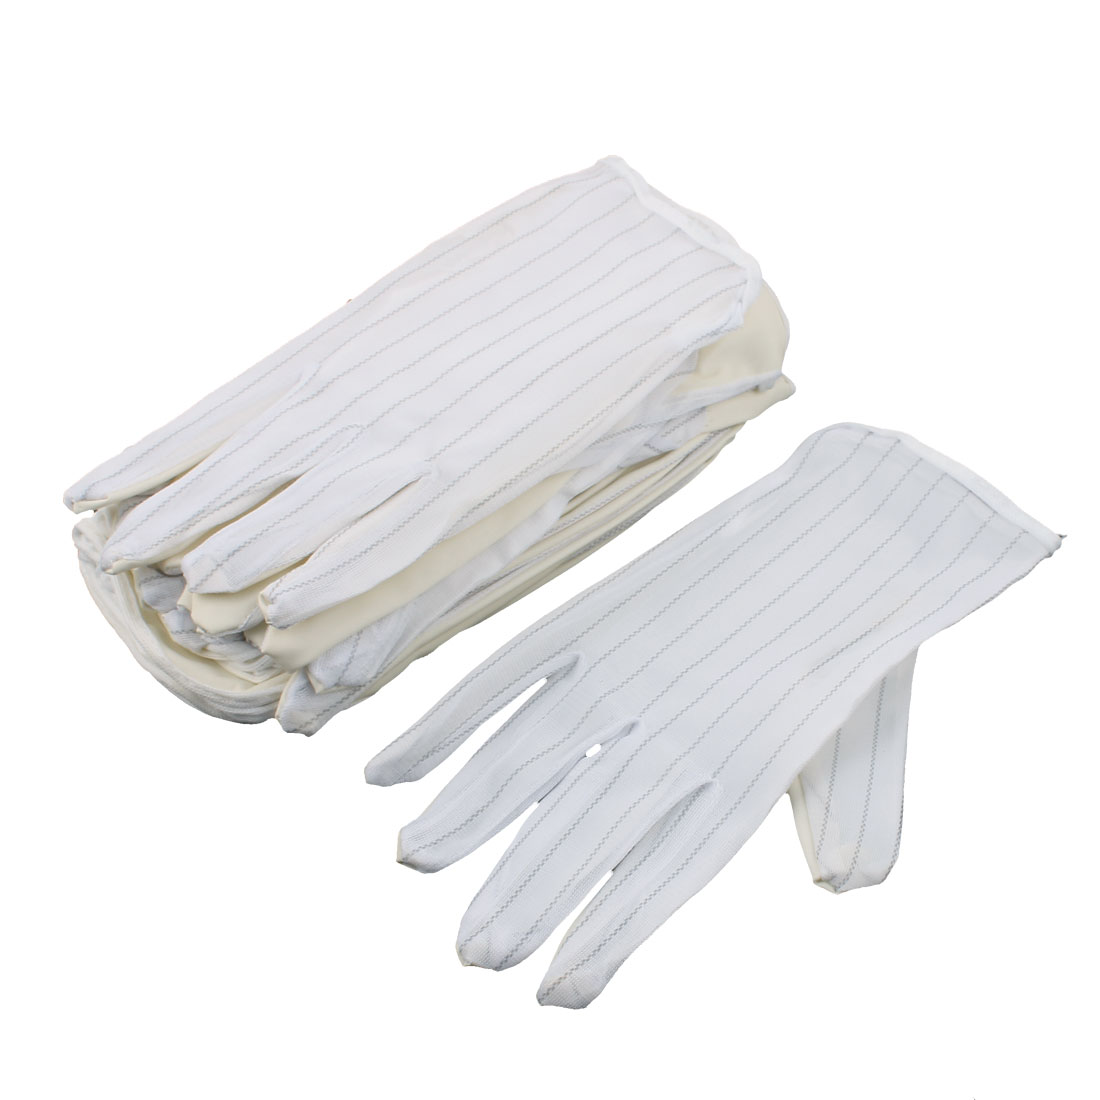 10 Pairs Full Finger Protector Striped Anti-static Skidproof Coated Gloves White